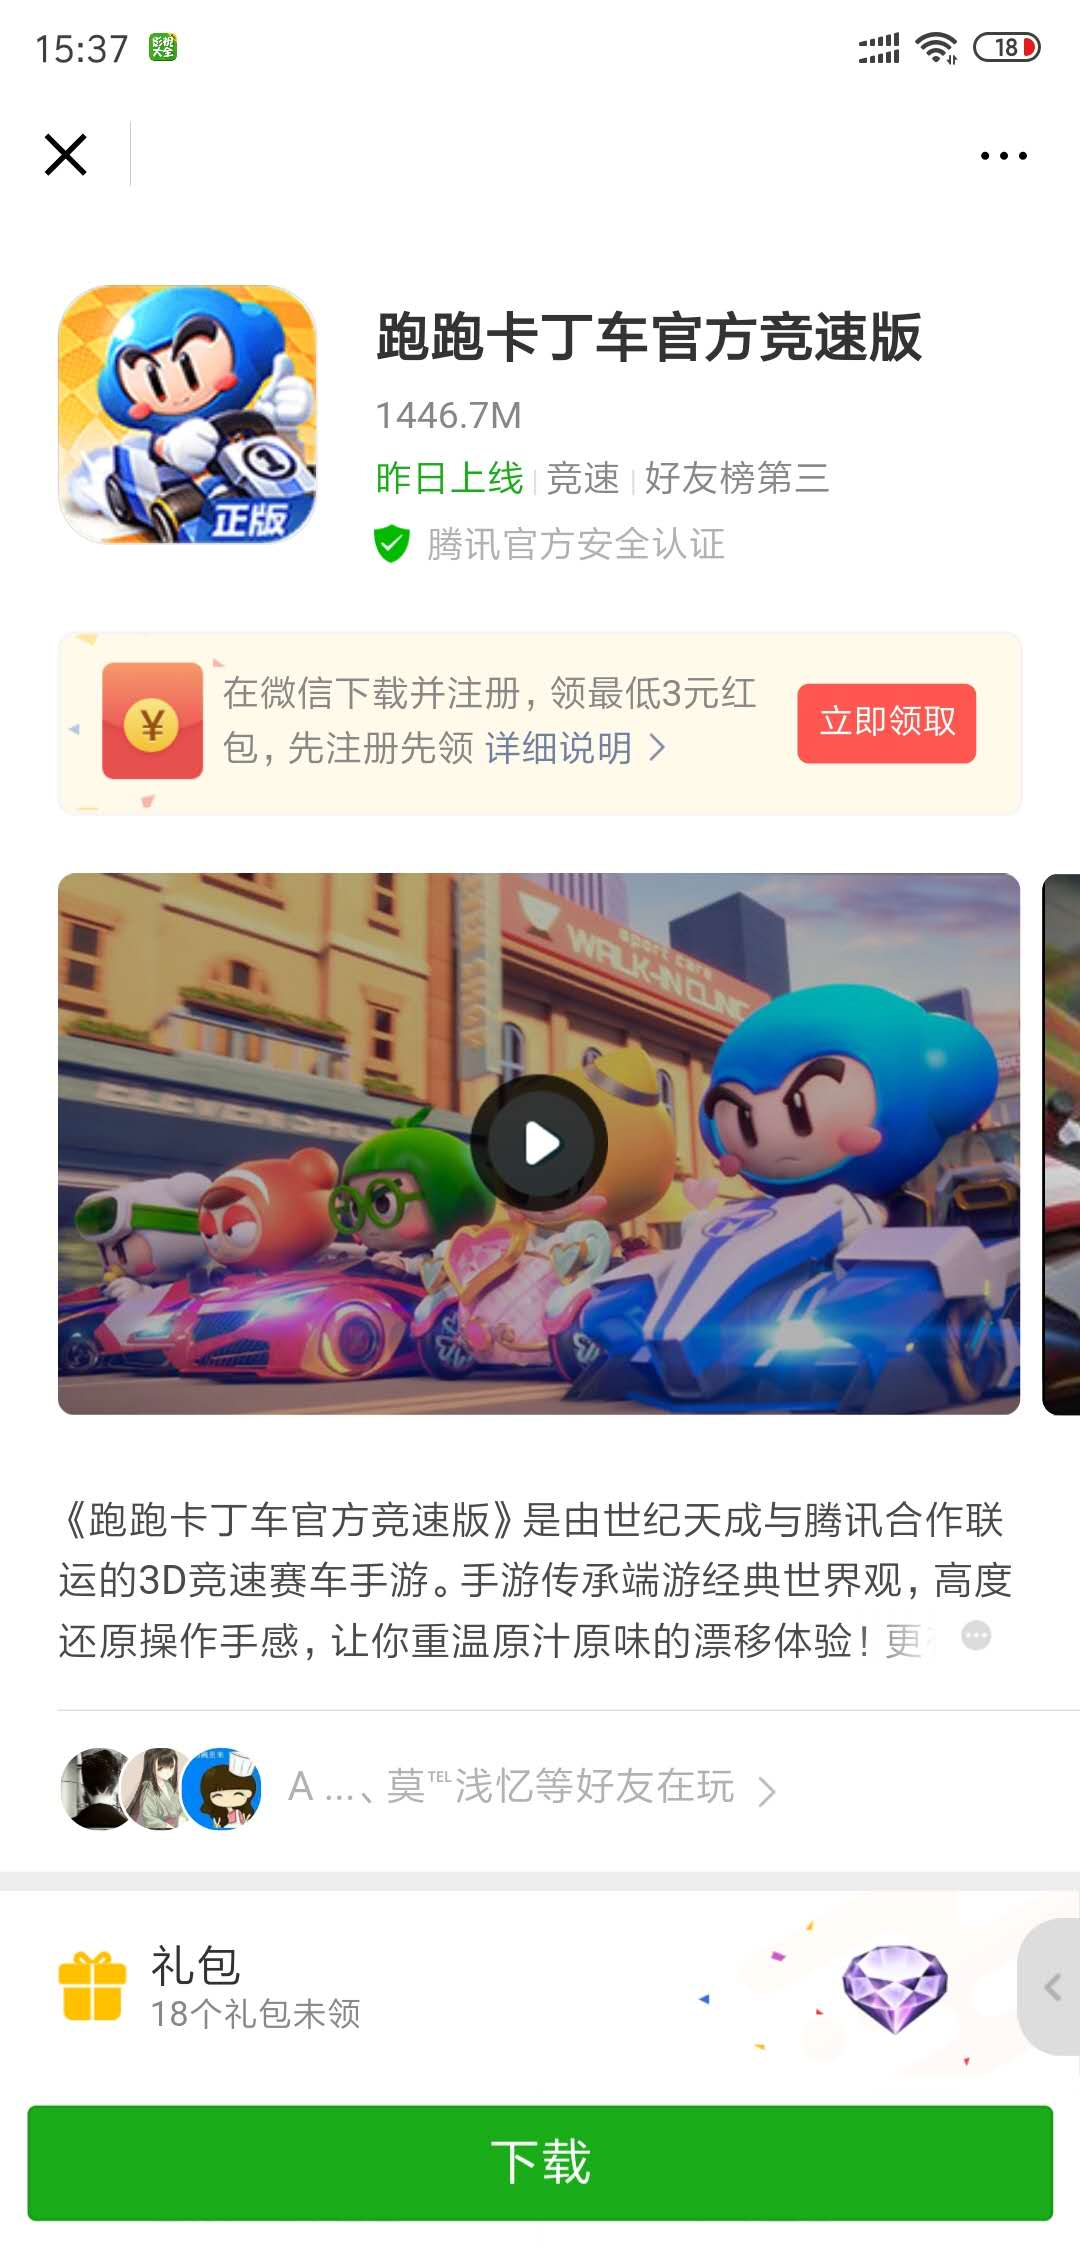 https://weizqian.com/post/293.html